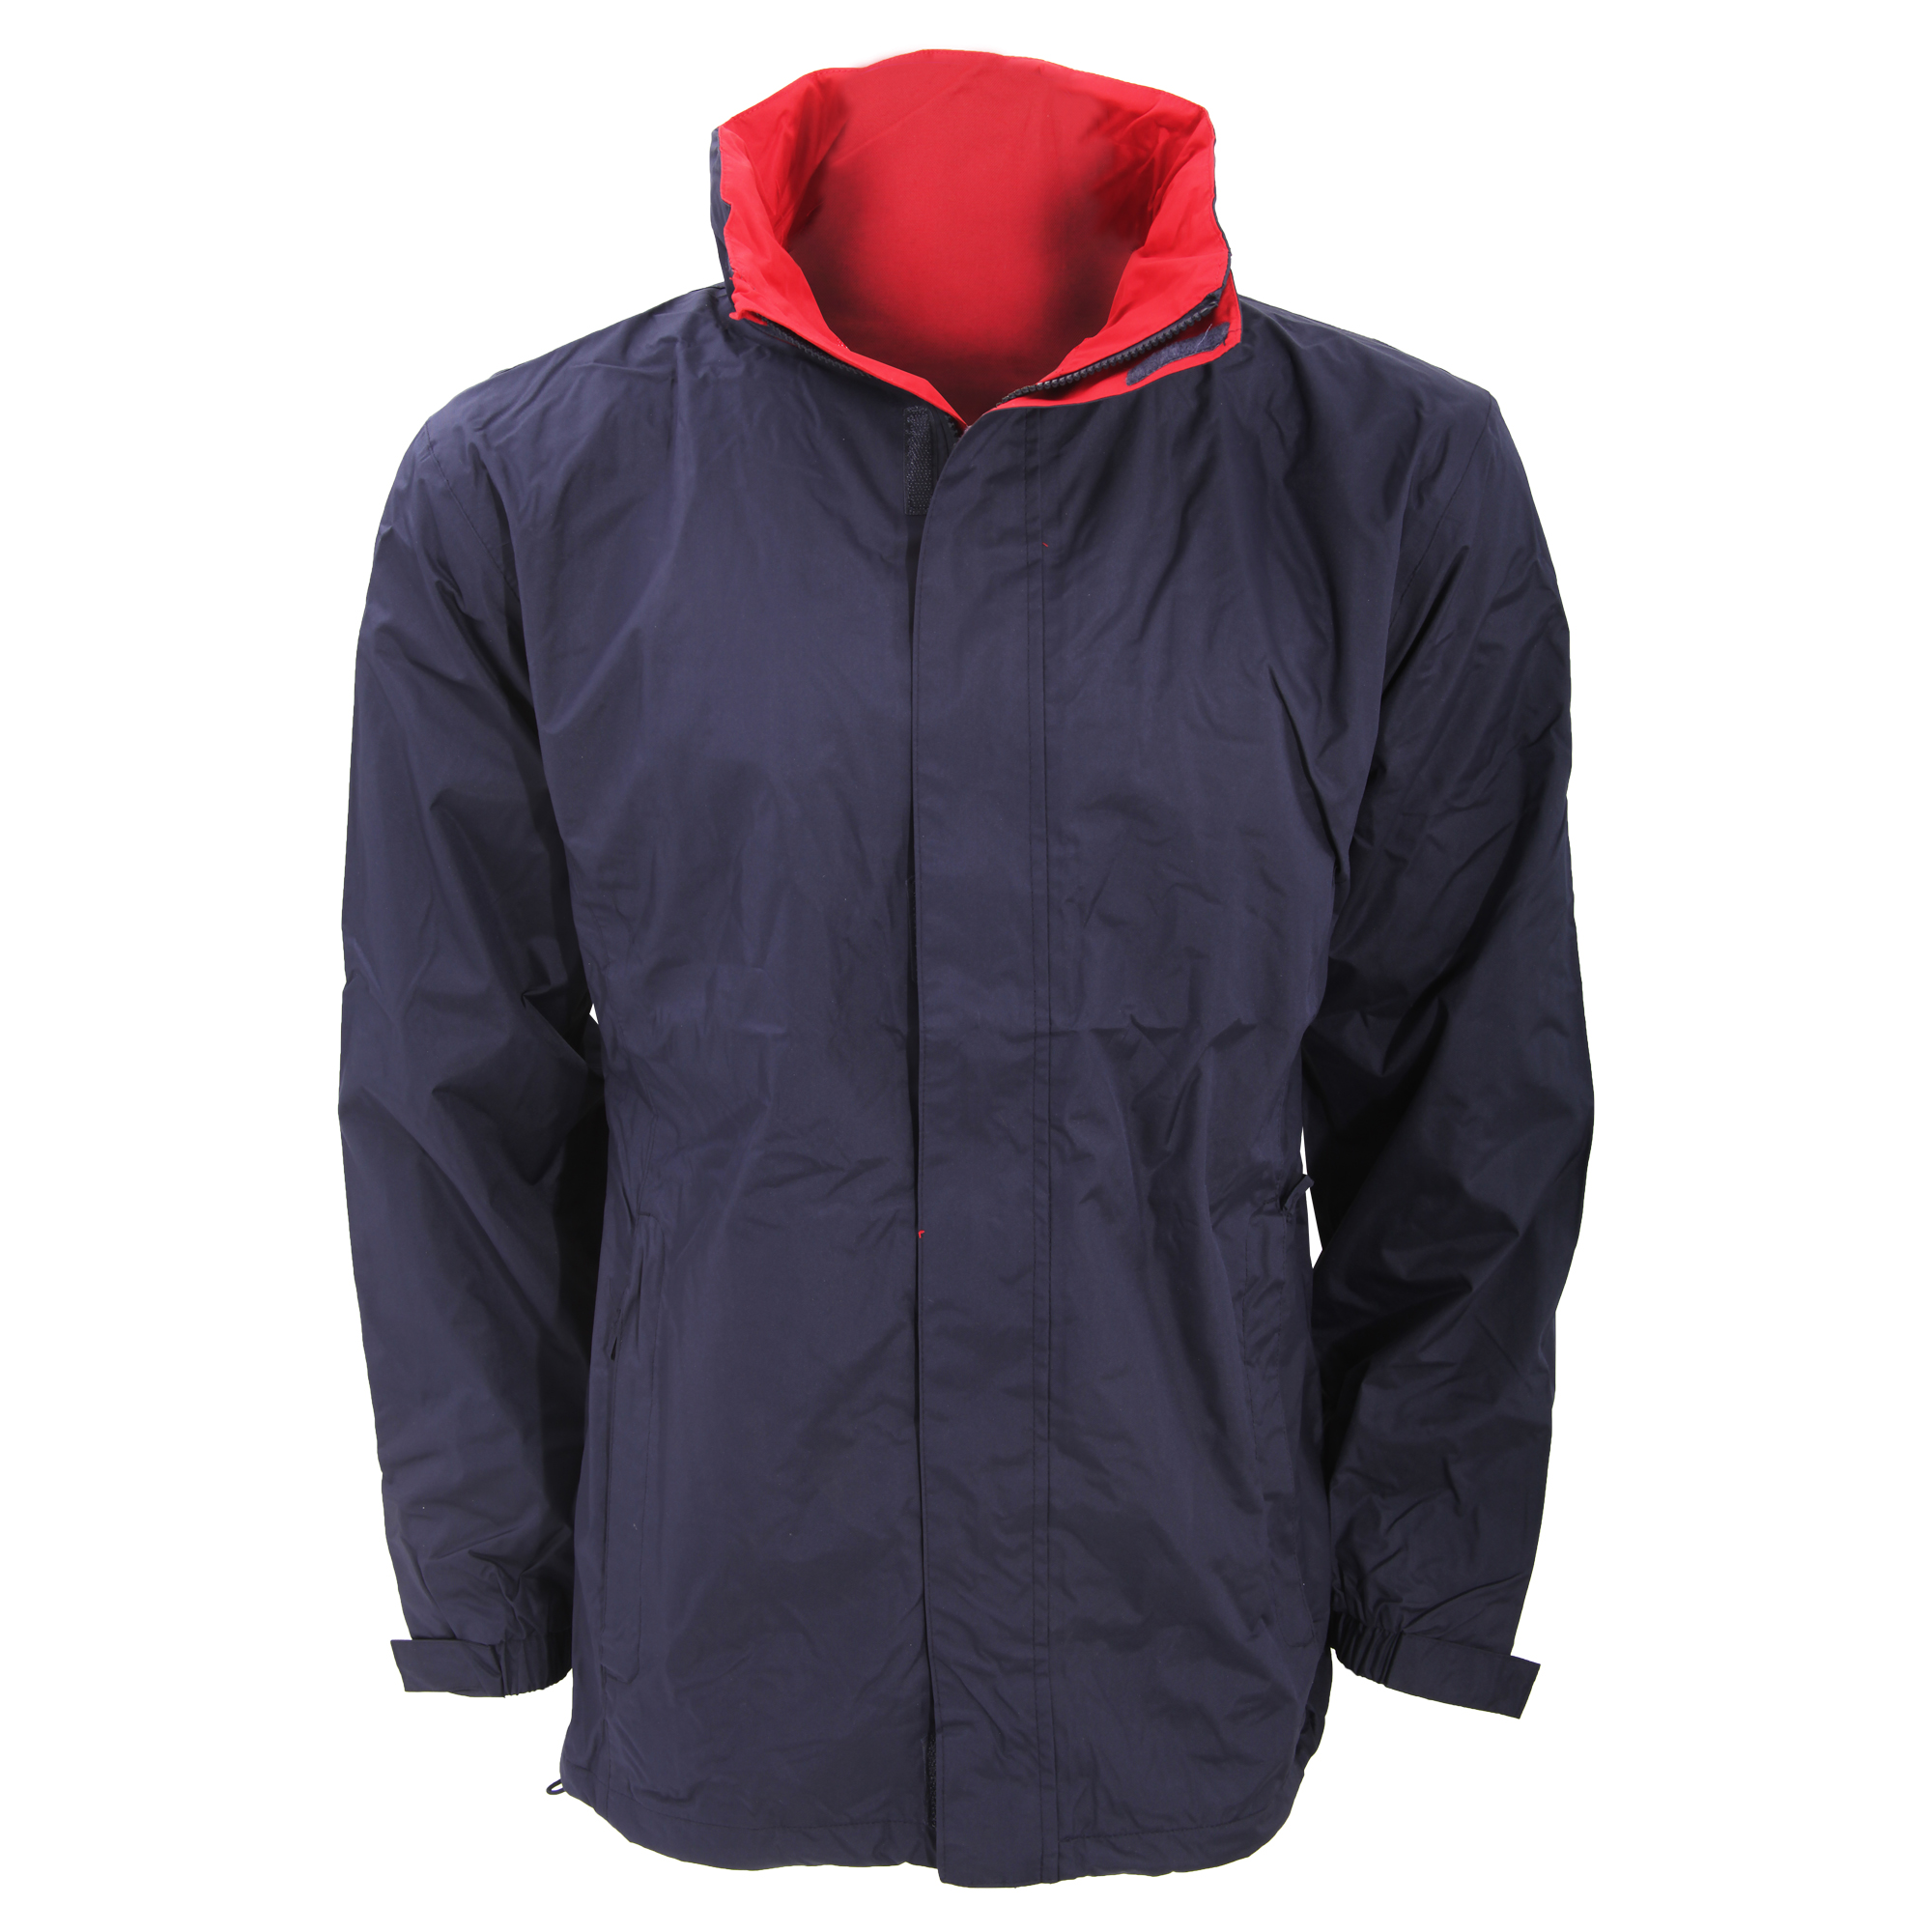 We have a fantastic range of ladies jackets to suit a variety of weather conditions including down, waterproof and padded coats. With a great selection of styles & colours wherever you adventure, you'll find a winter coat to suit.